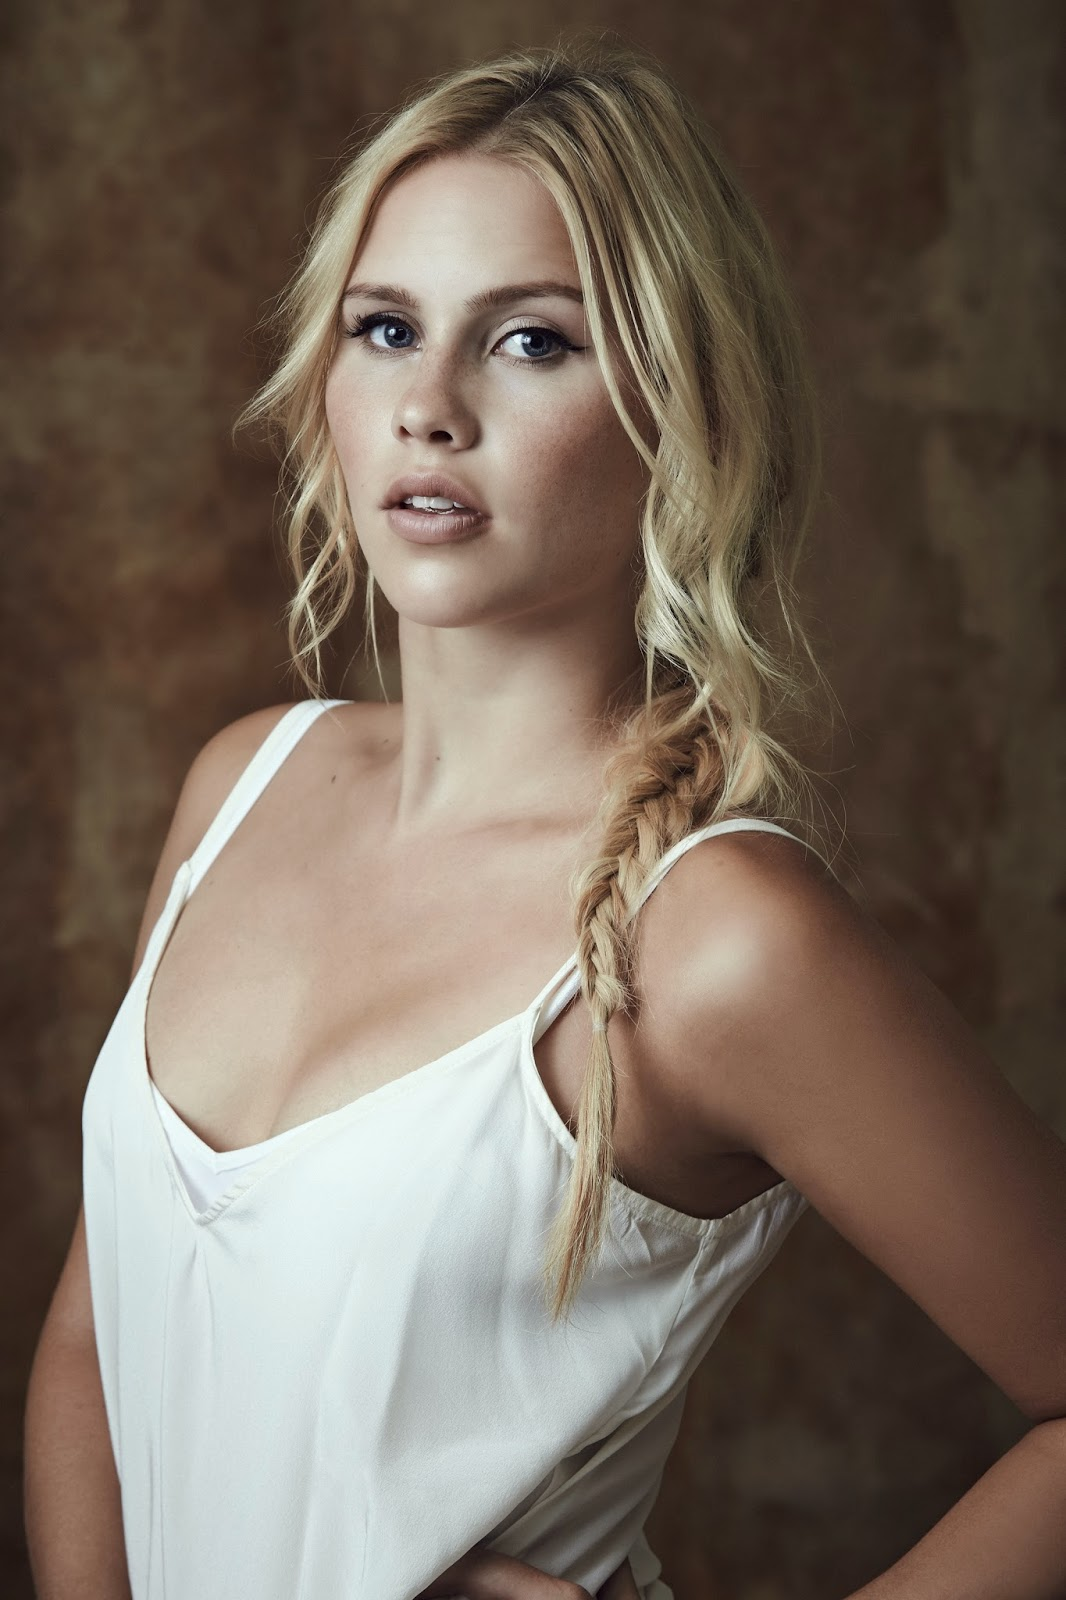 Claire holt Hot Sexy Images